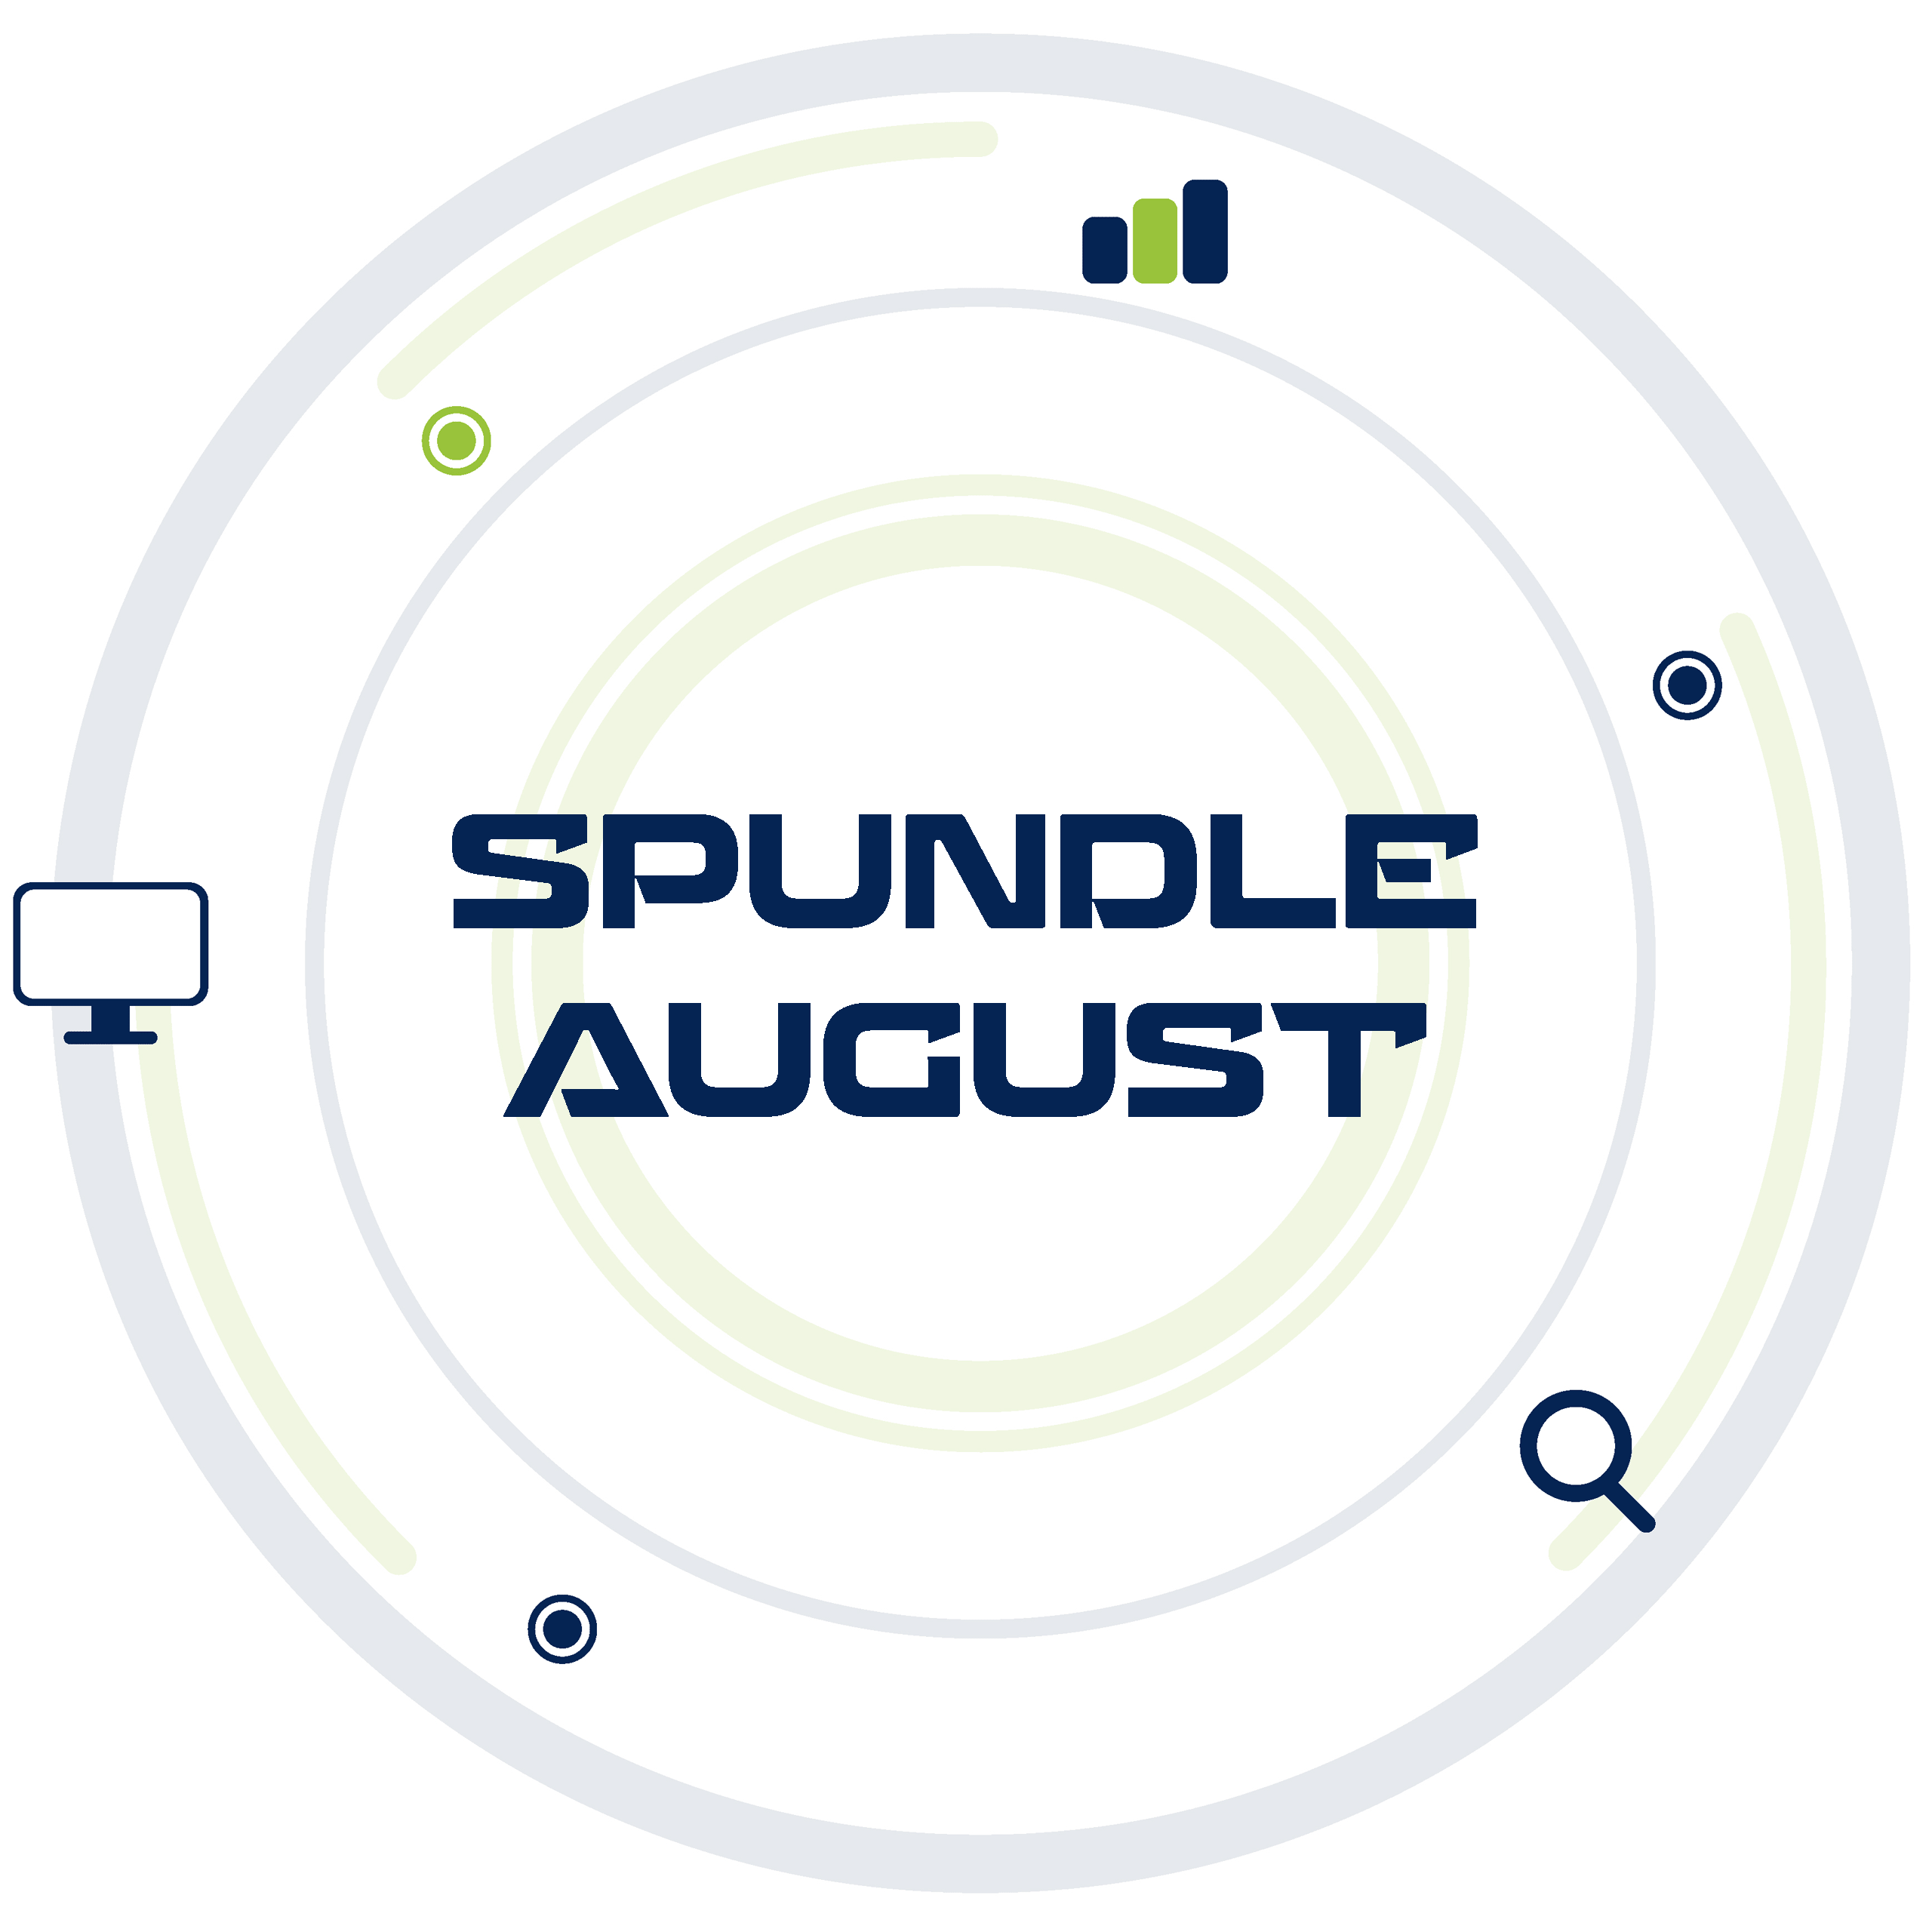 SPUNDLE Update – August 2020 image